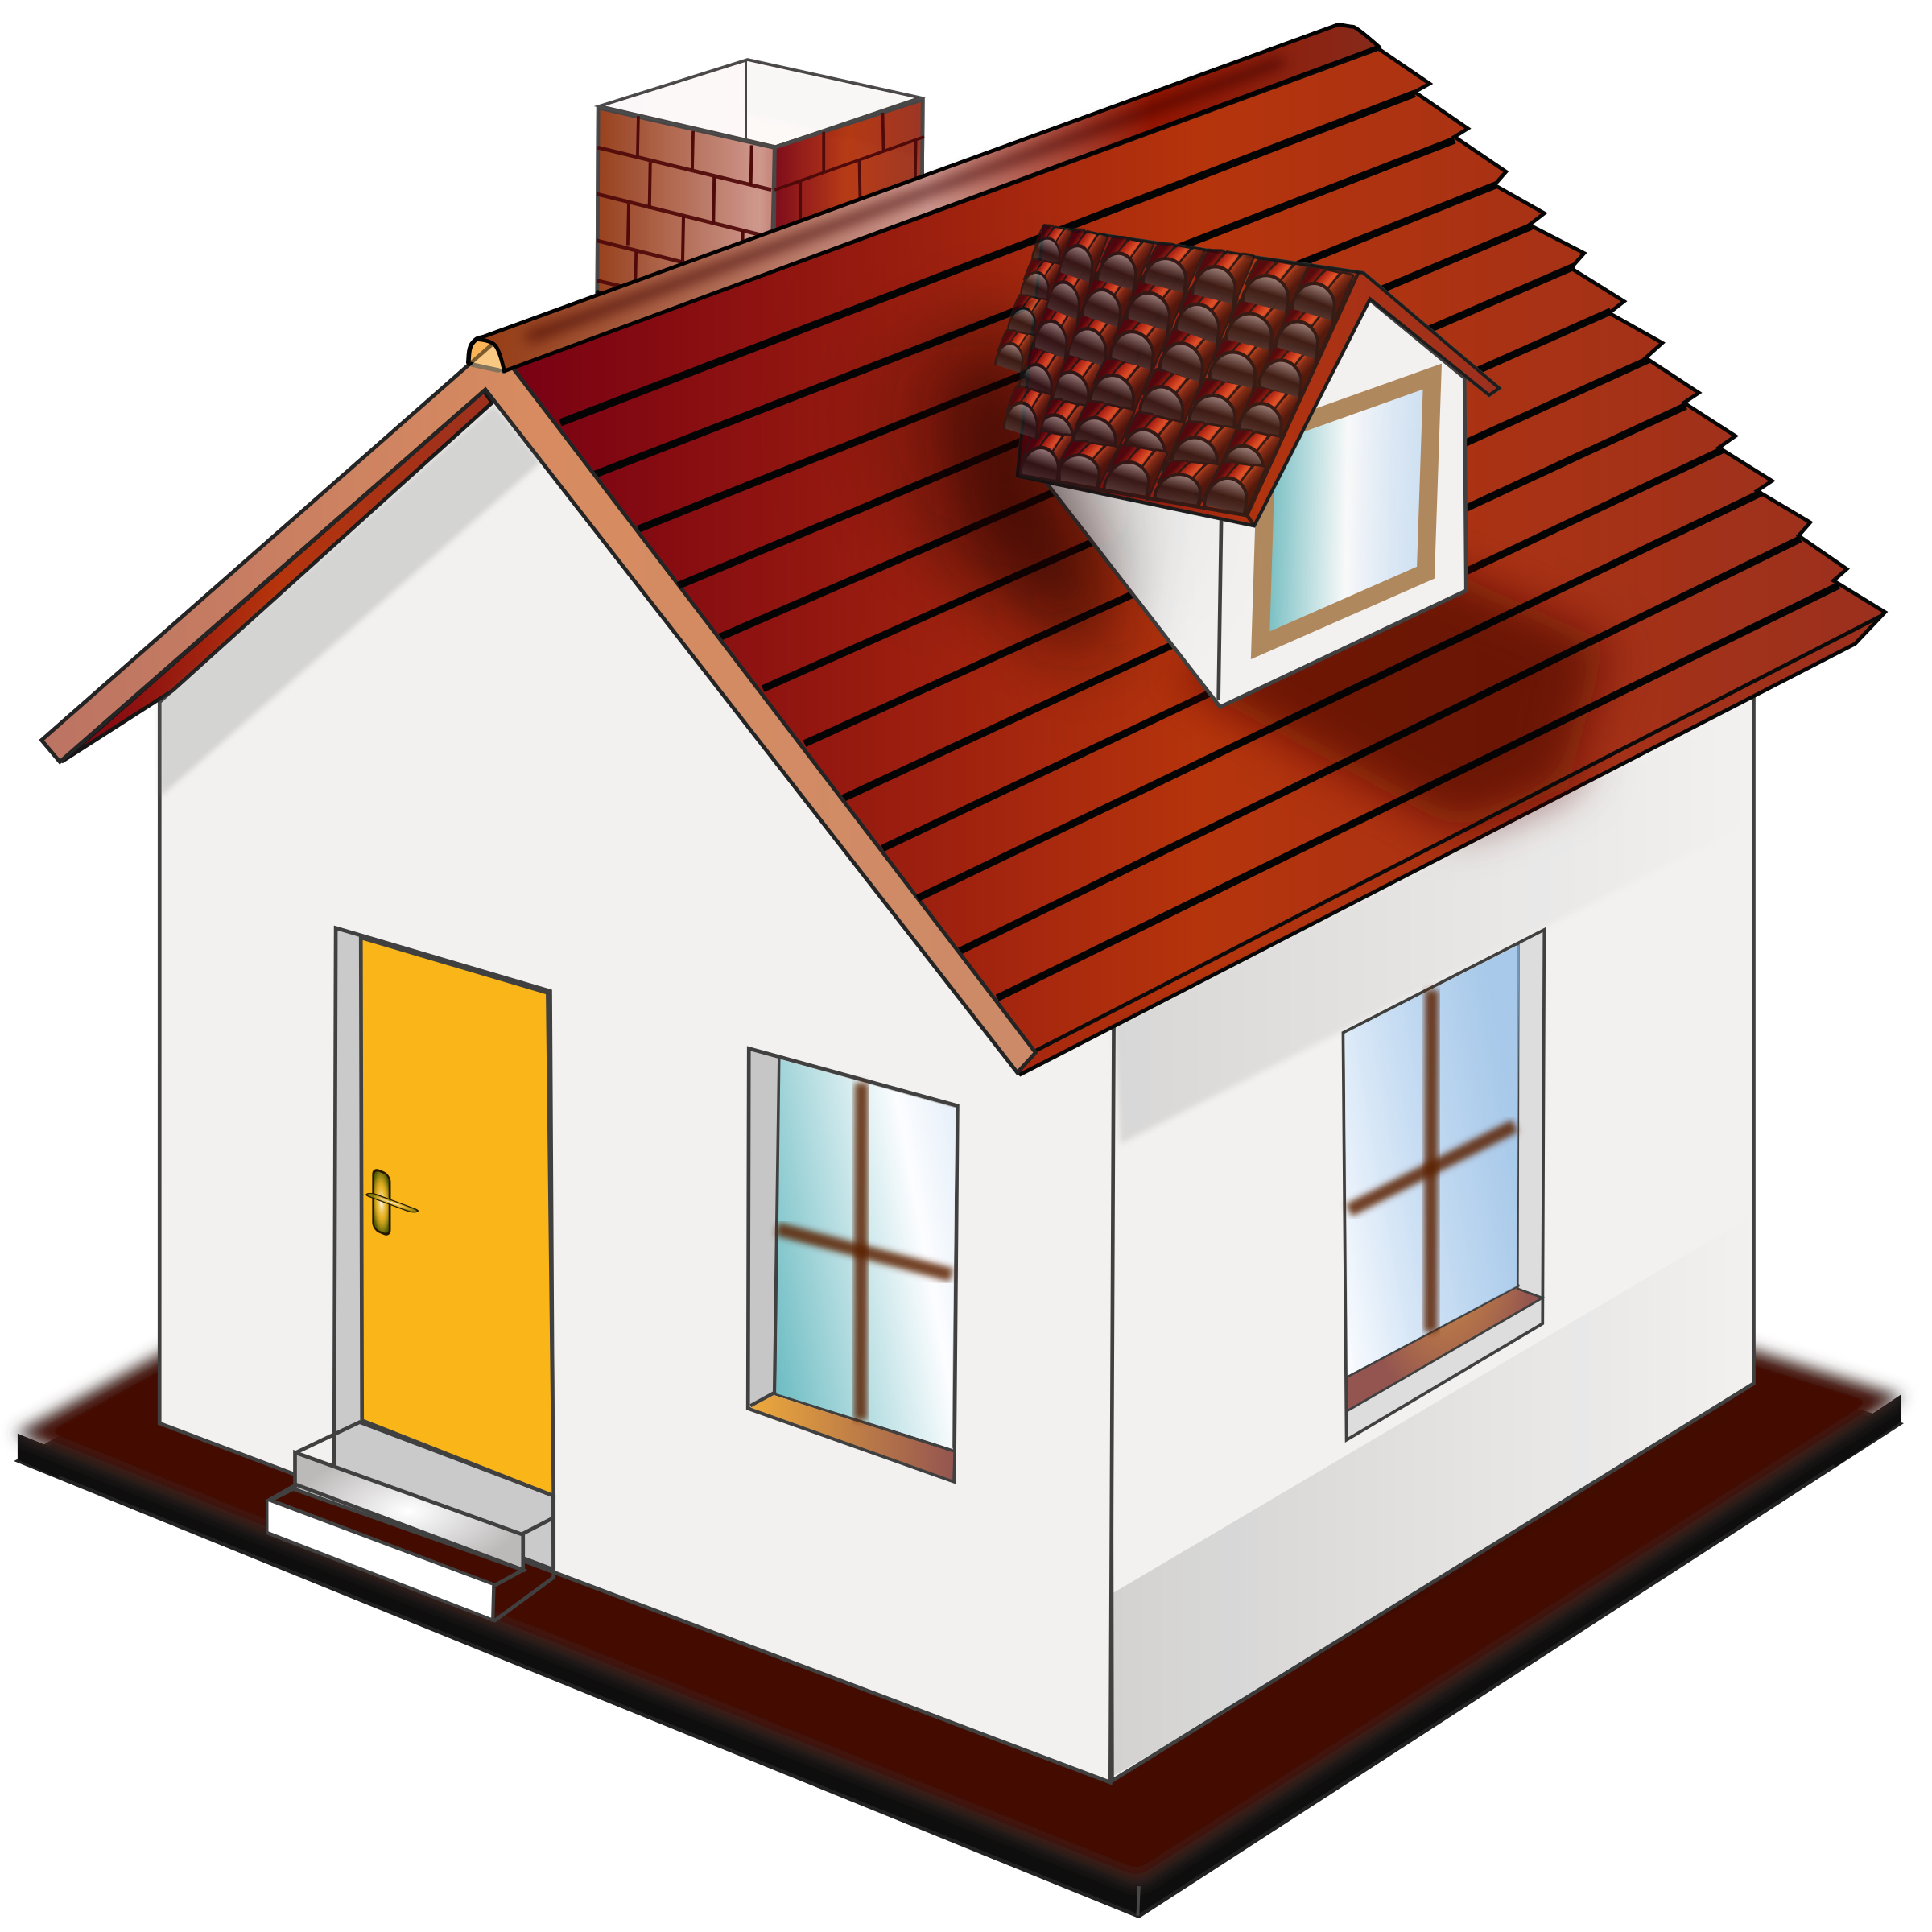 image free download House YouTube Clip art